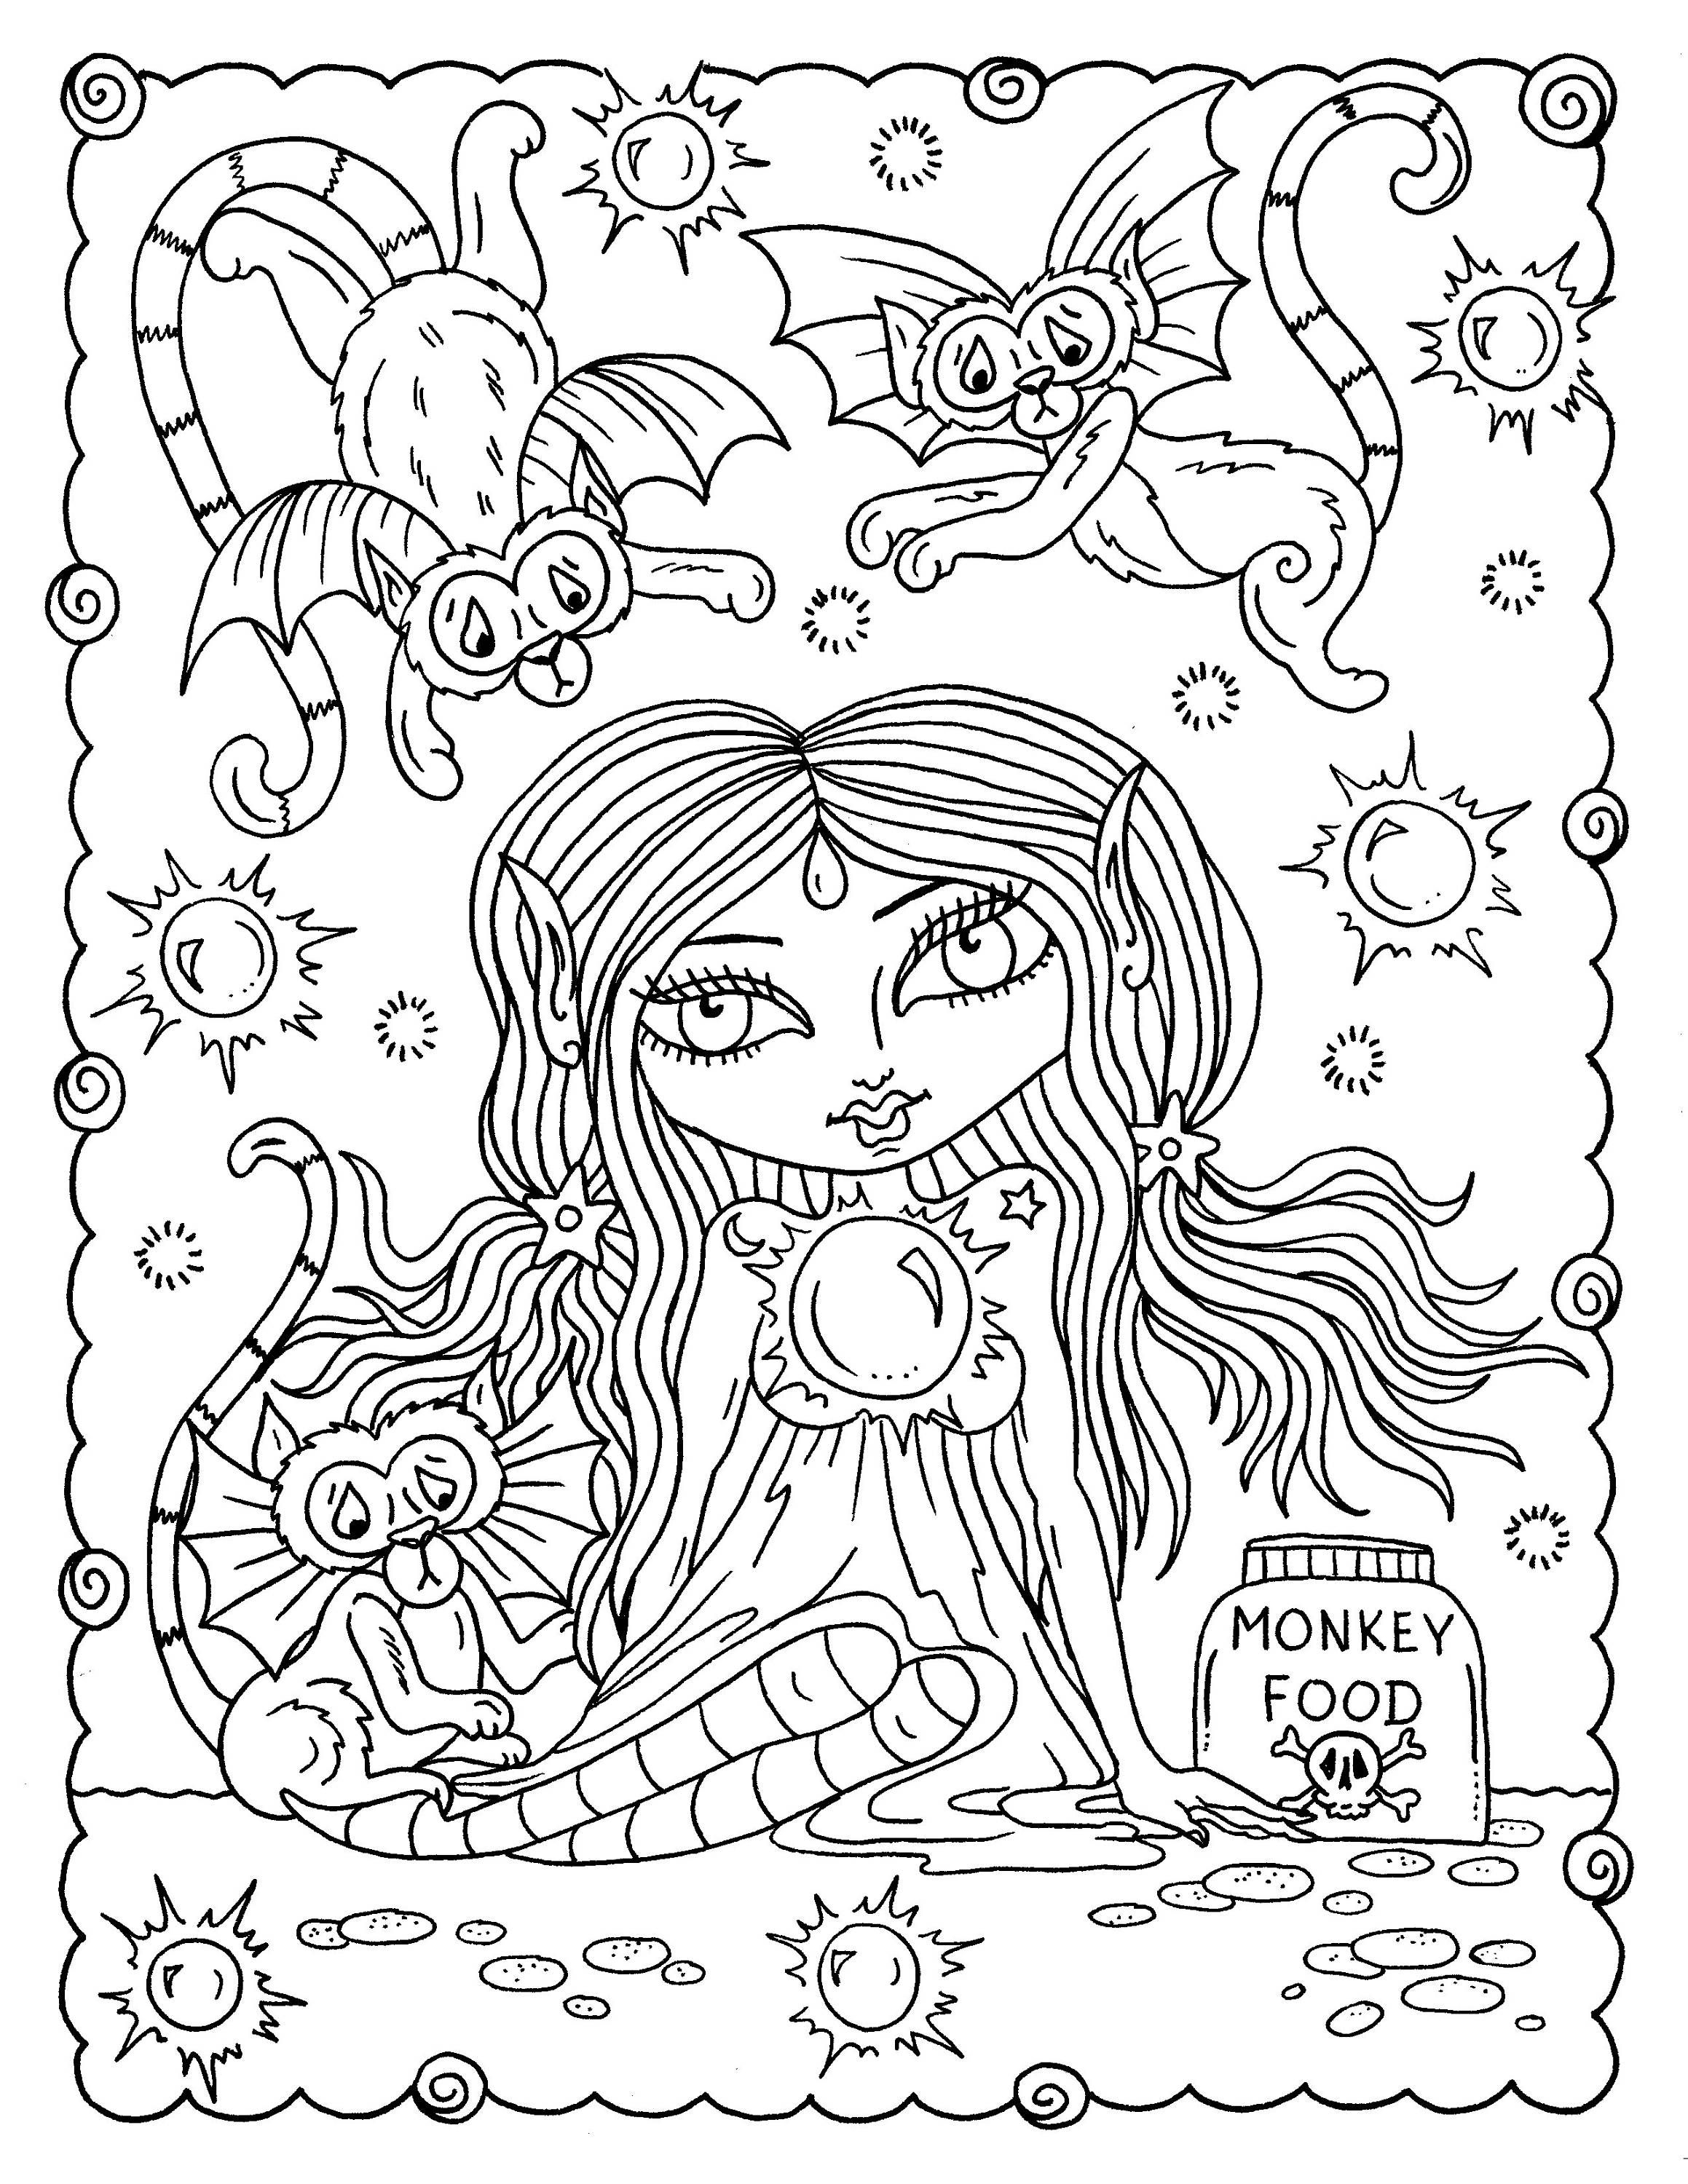 creepy fairy coloring pages misfit girls 5 pages halloween misfits creepy cute fairy pages coloring creepy